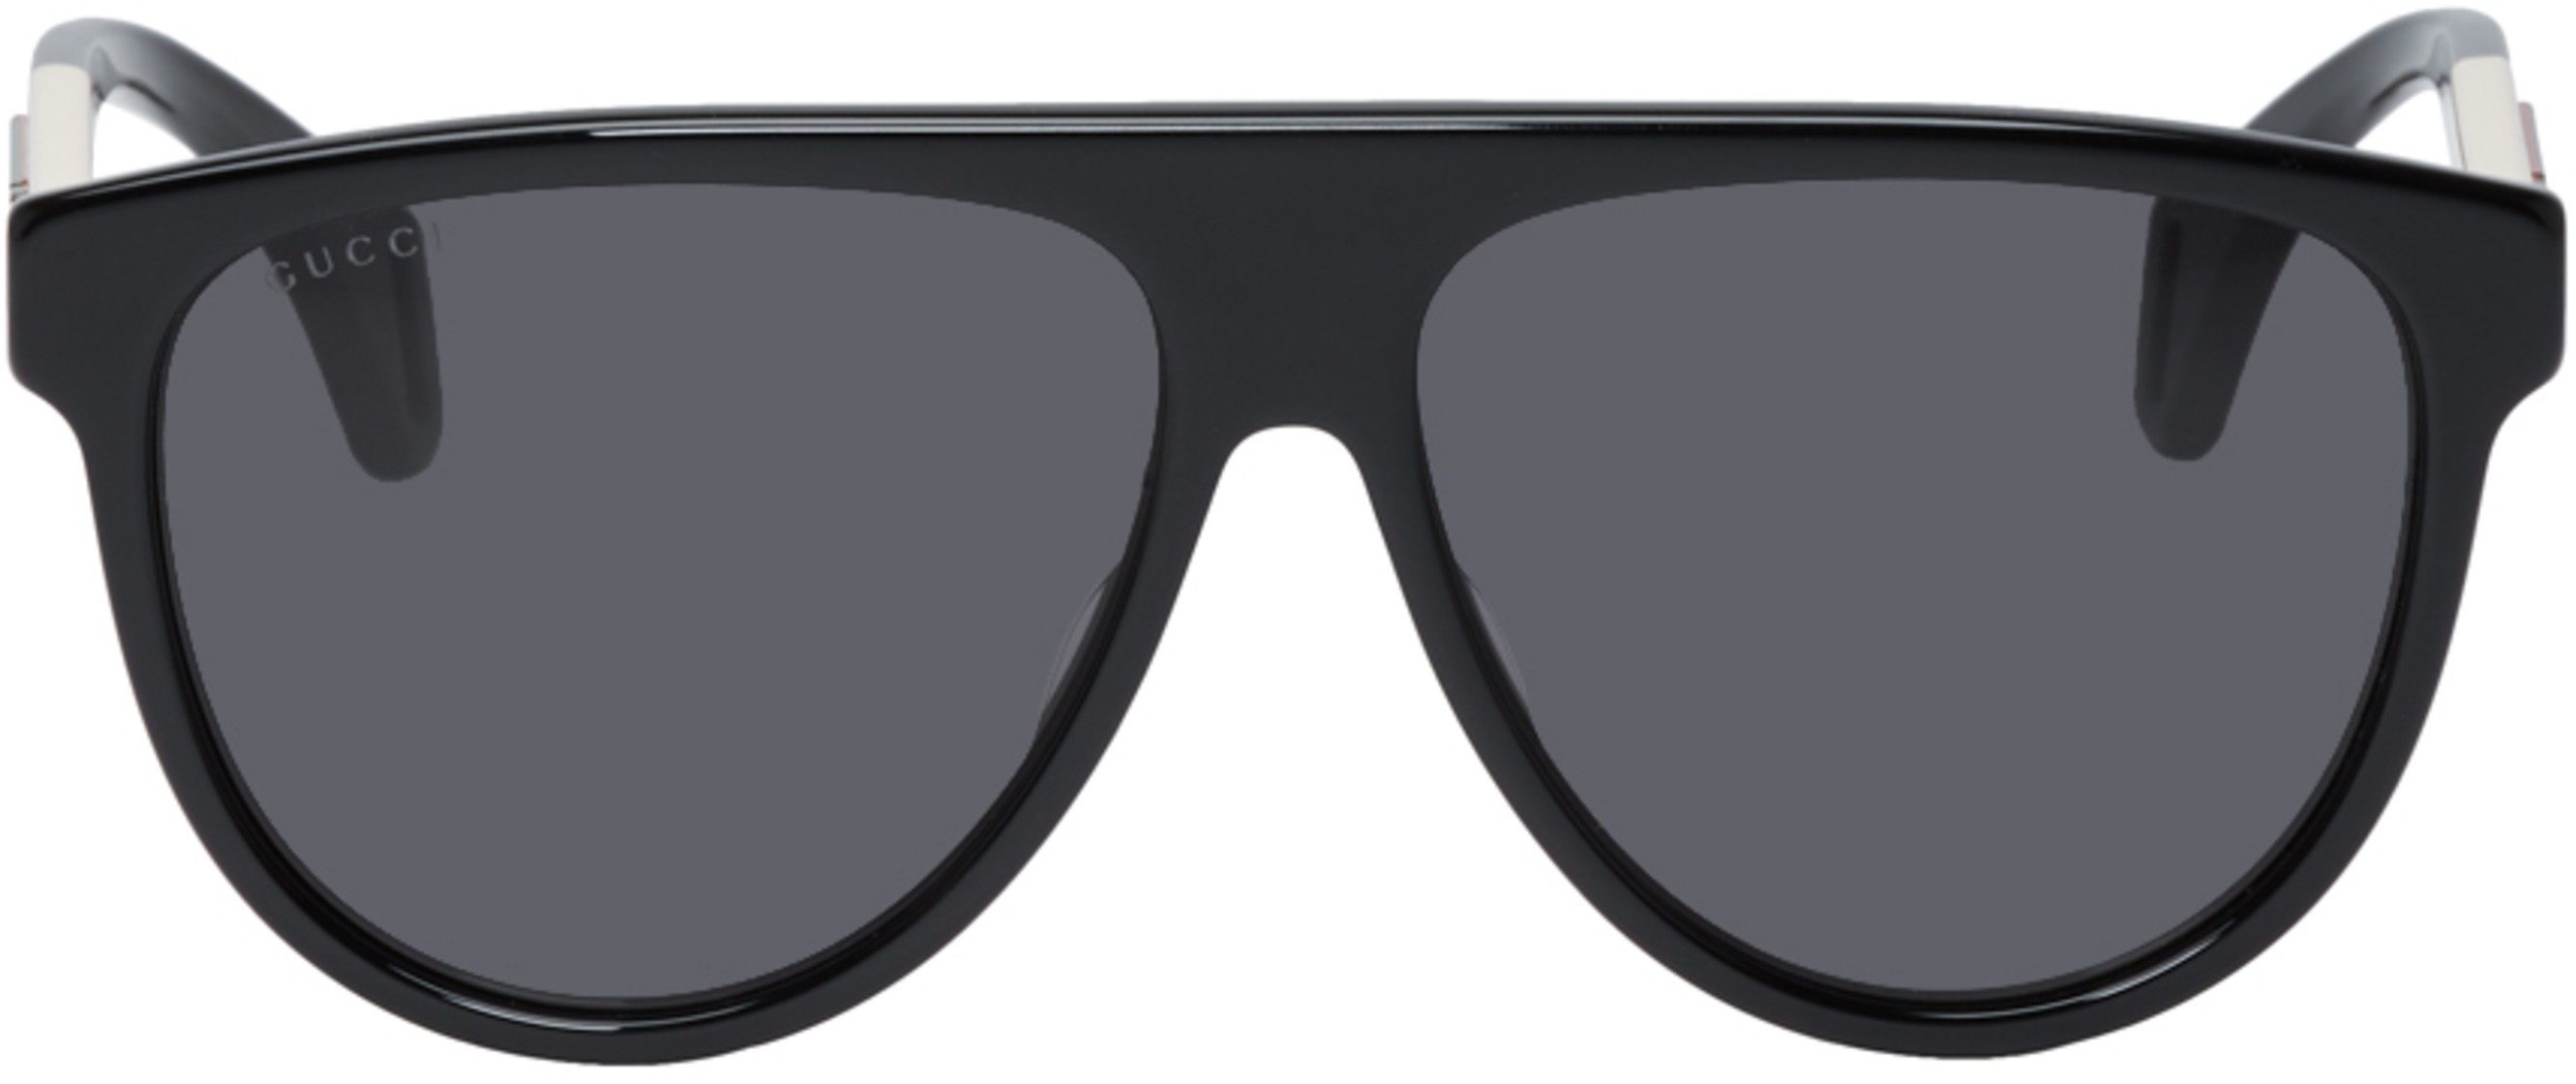 5853882ea2b Gucci sunglasses for Men